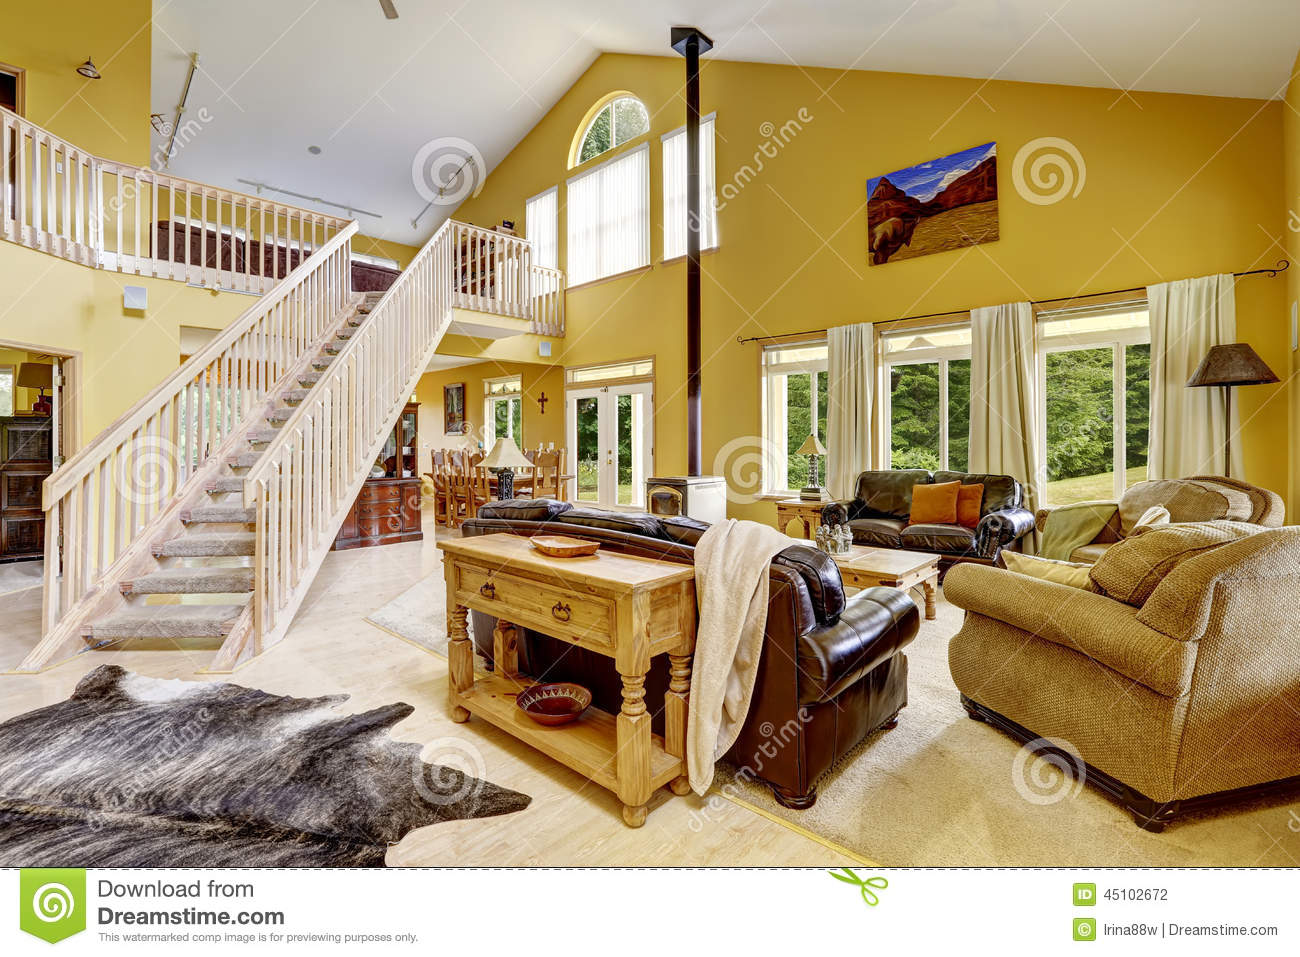 Stock Photo Luxury Family Room Rich Furniture Staircase To Loft Beautiful House High Vaulted Ceiling Wooden Spacious Leather Couches Image45102672 on Antique Style Living Room Sets